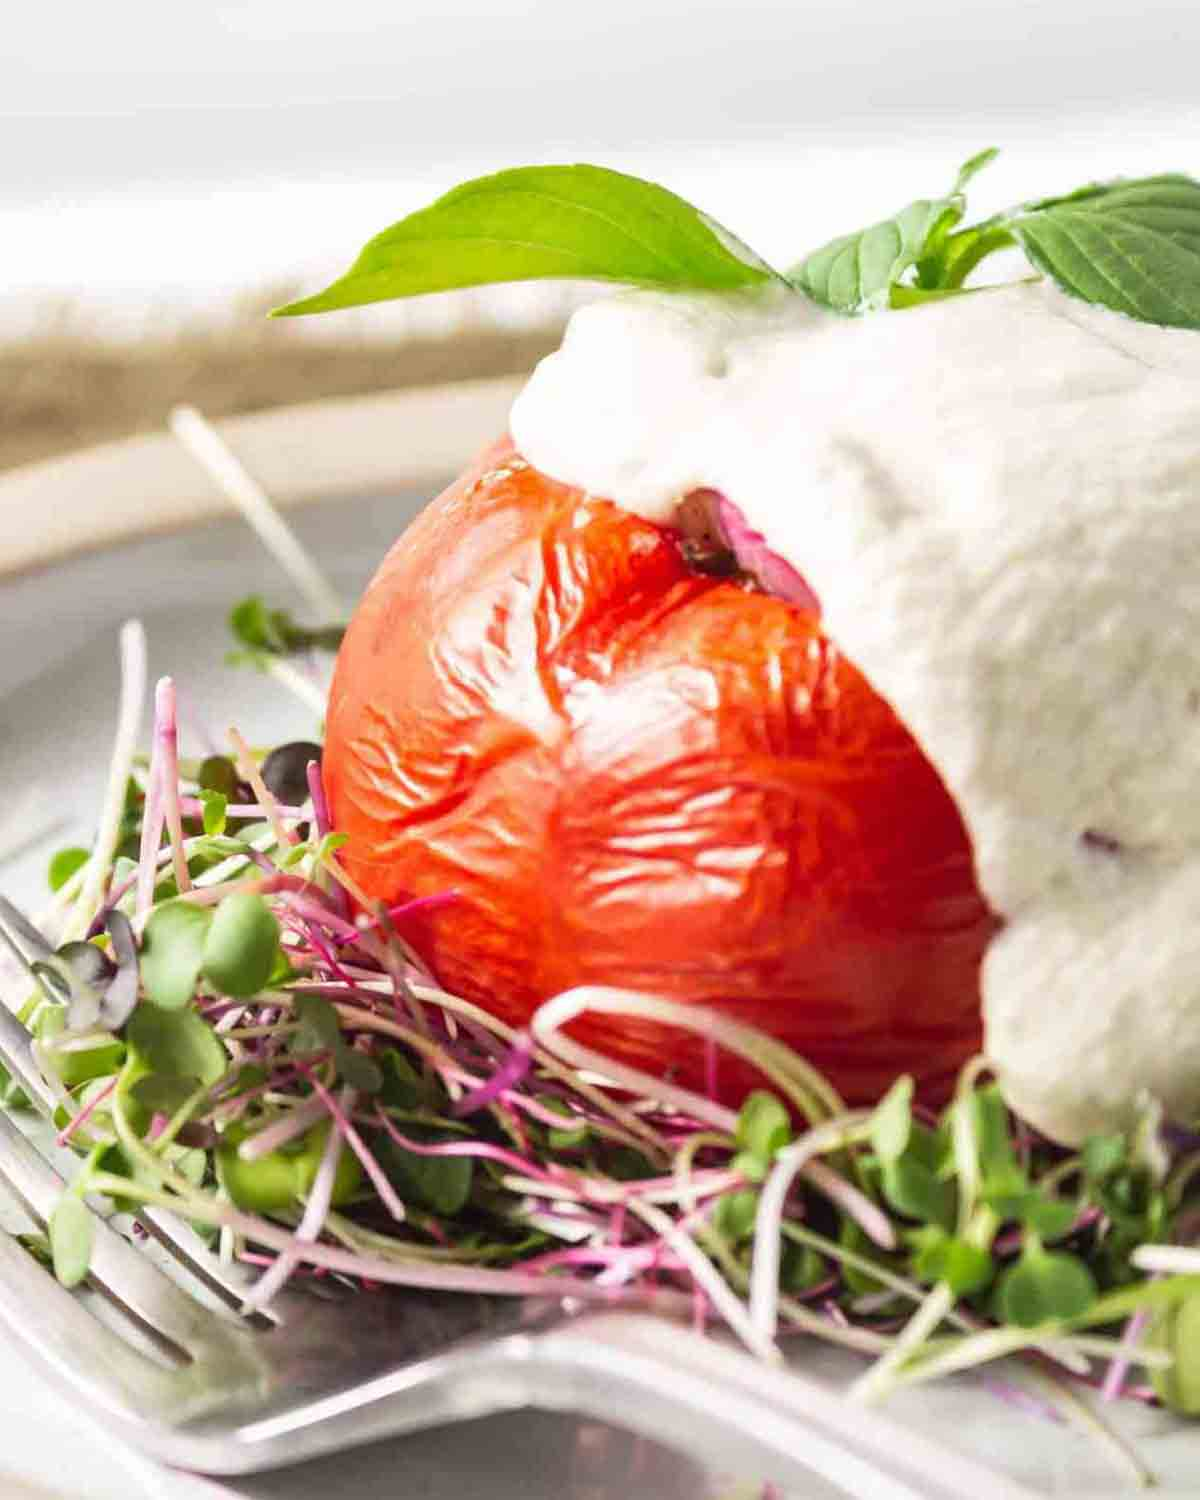 Close up of a stuffed tomato served on a bed of microgreens topped with cheese sauce.